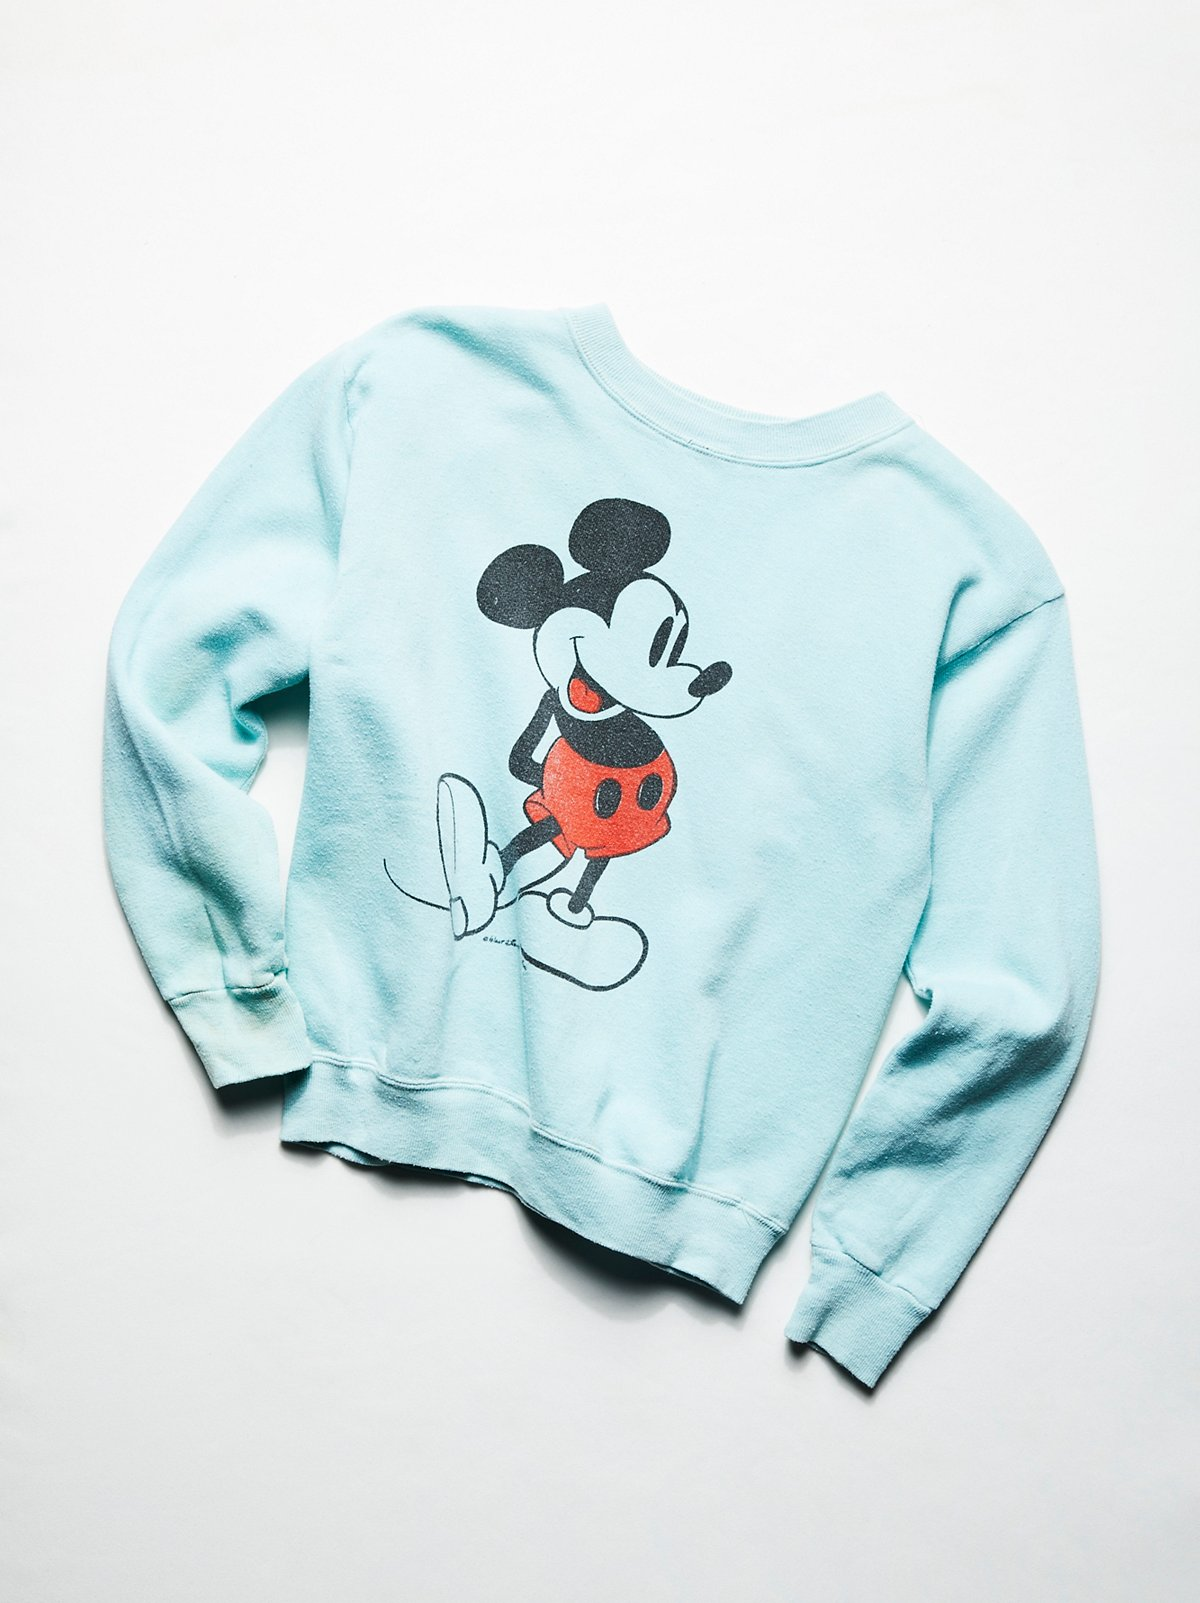 Vintage 1980s Mickey Mouse Sweatshirt